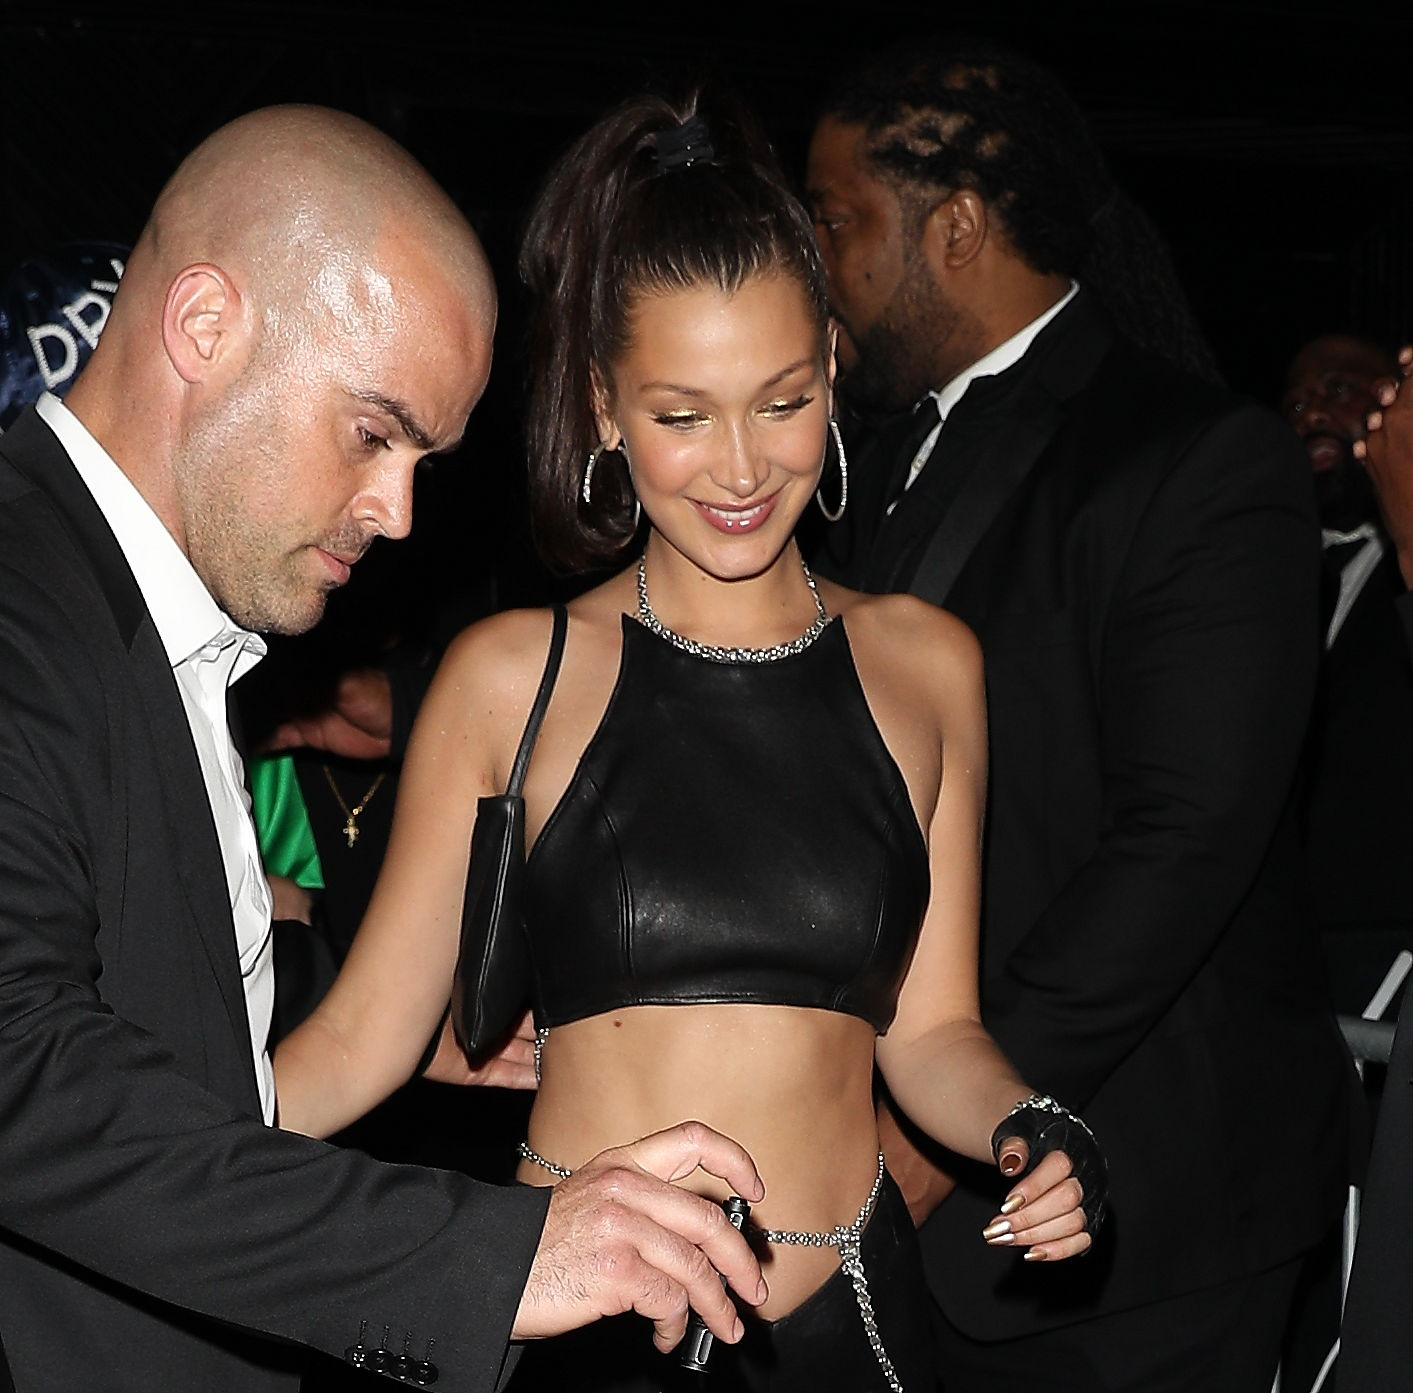 Bella Hadid attends Met Gala After Party